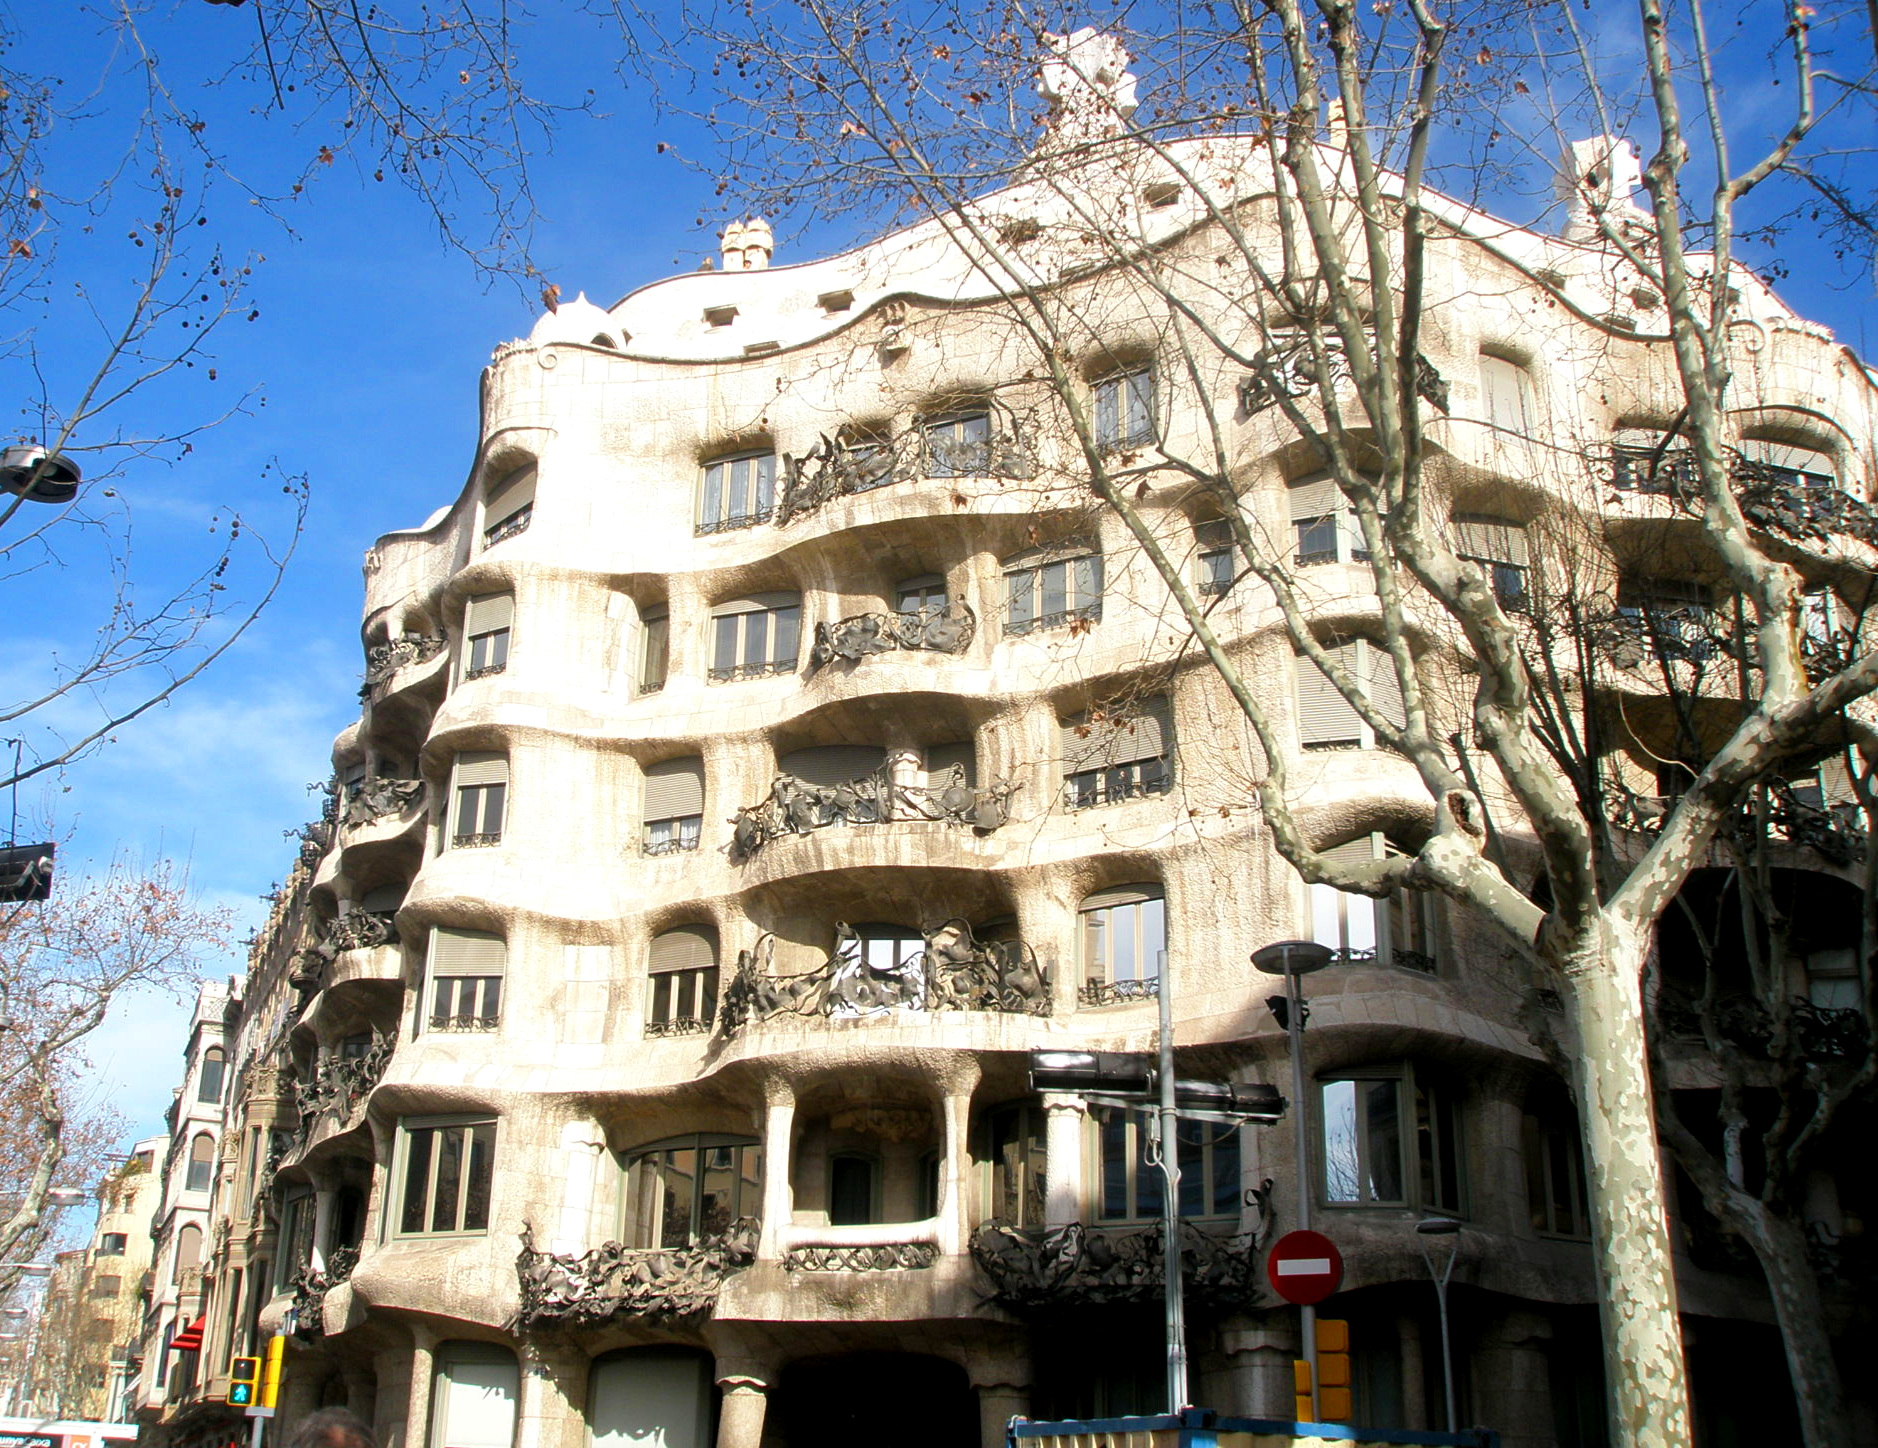 Gaudí's buildings are certainly out-of-the-ordinary.